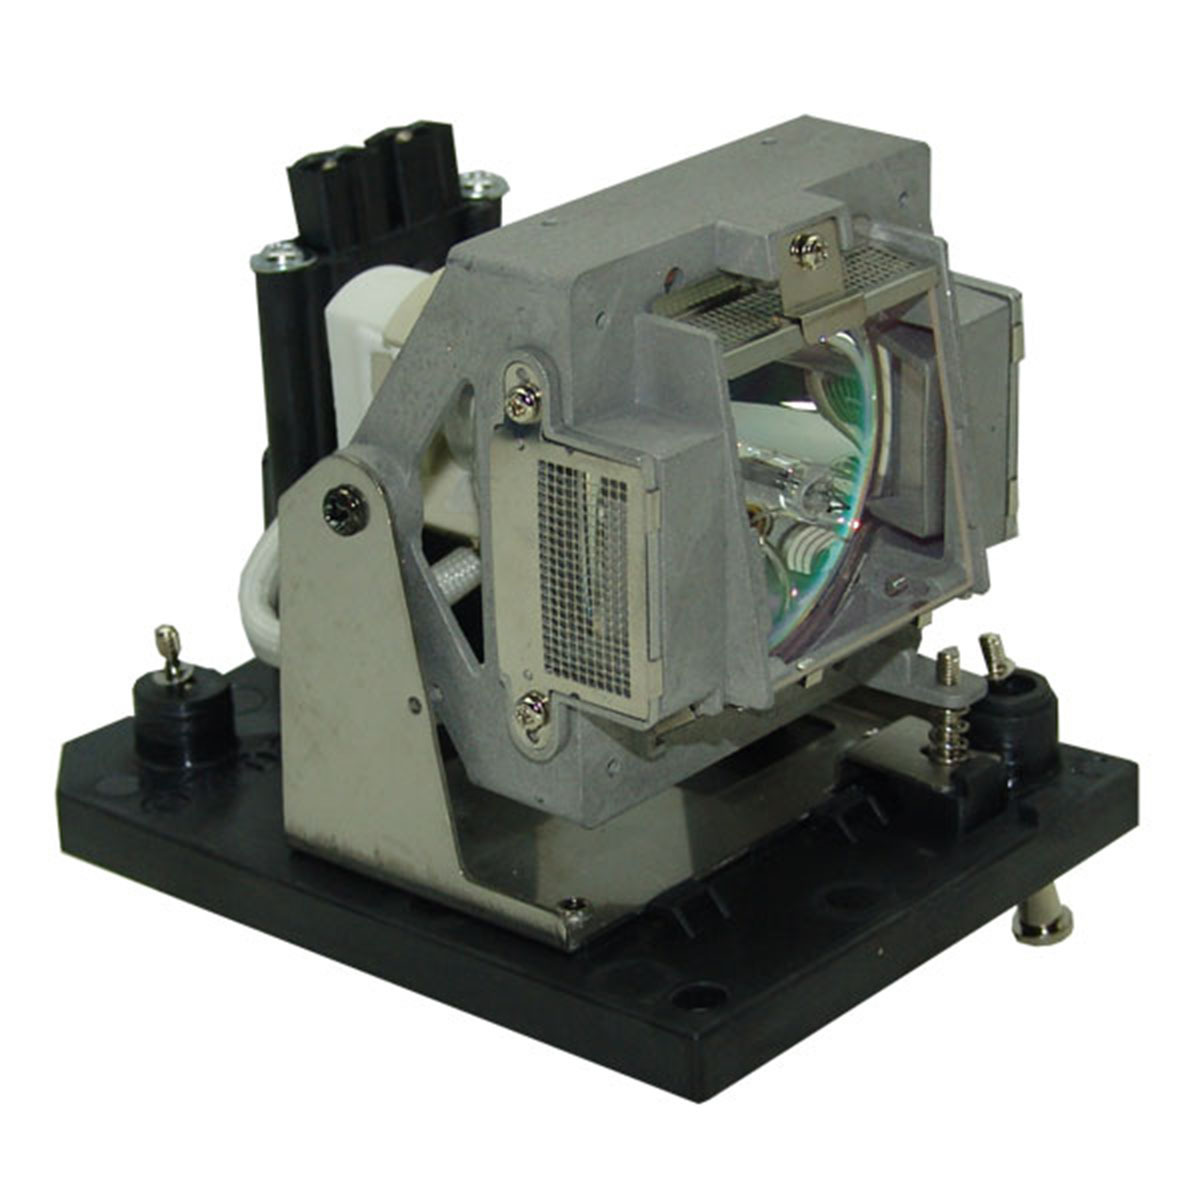 Primary image for Geha 60-002027 Compatible Projector Lamp Module